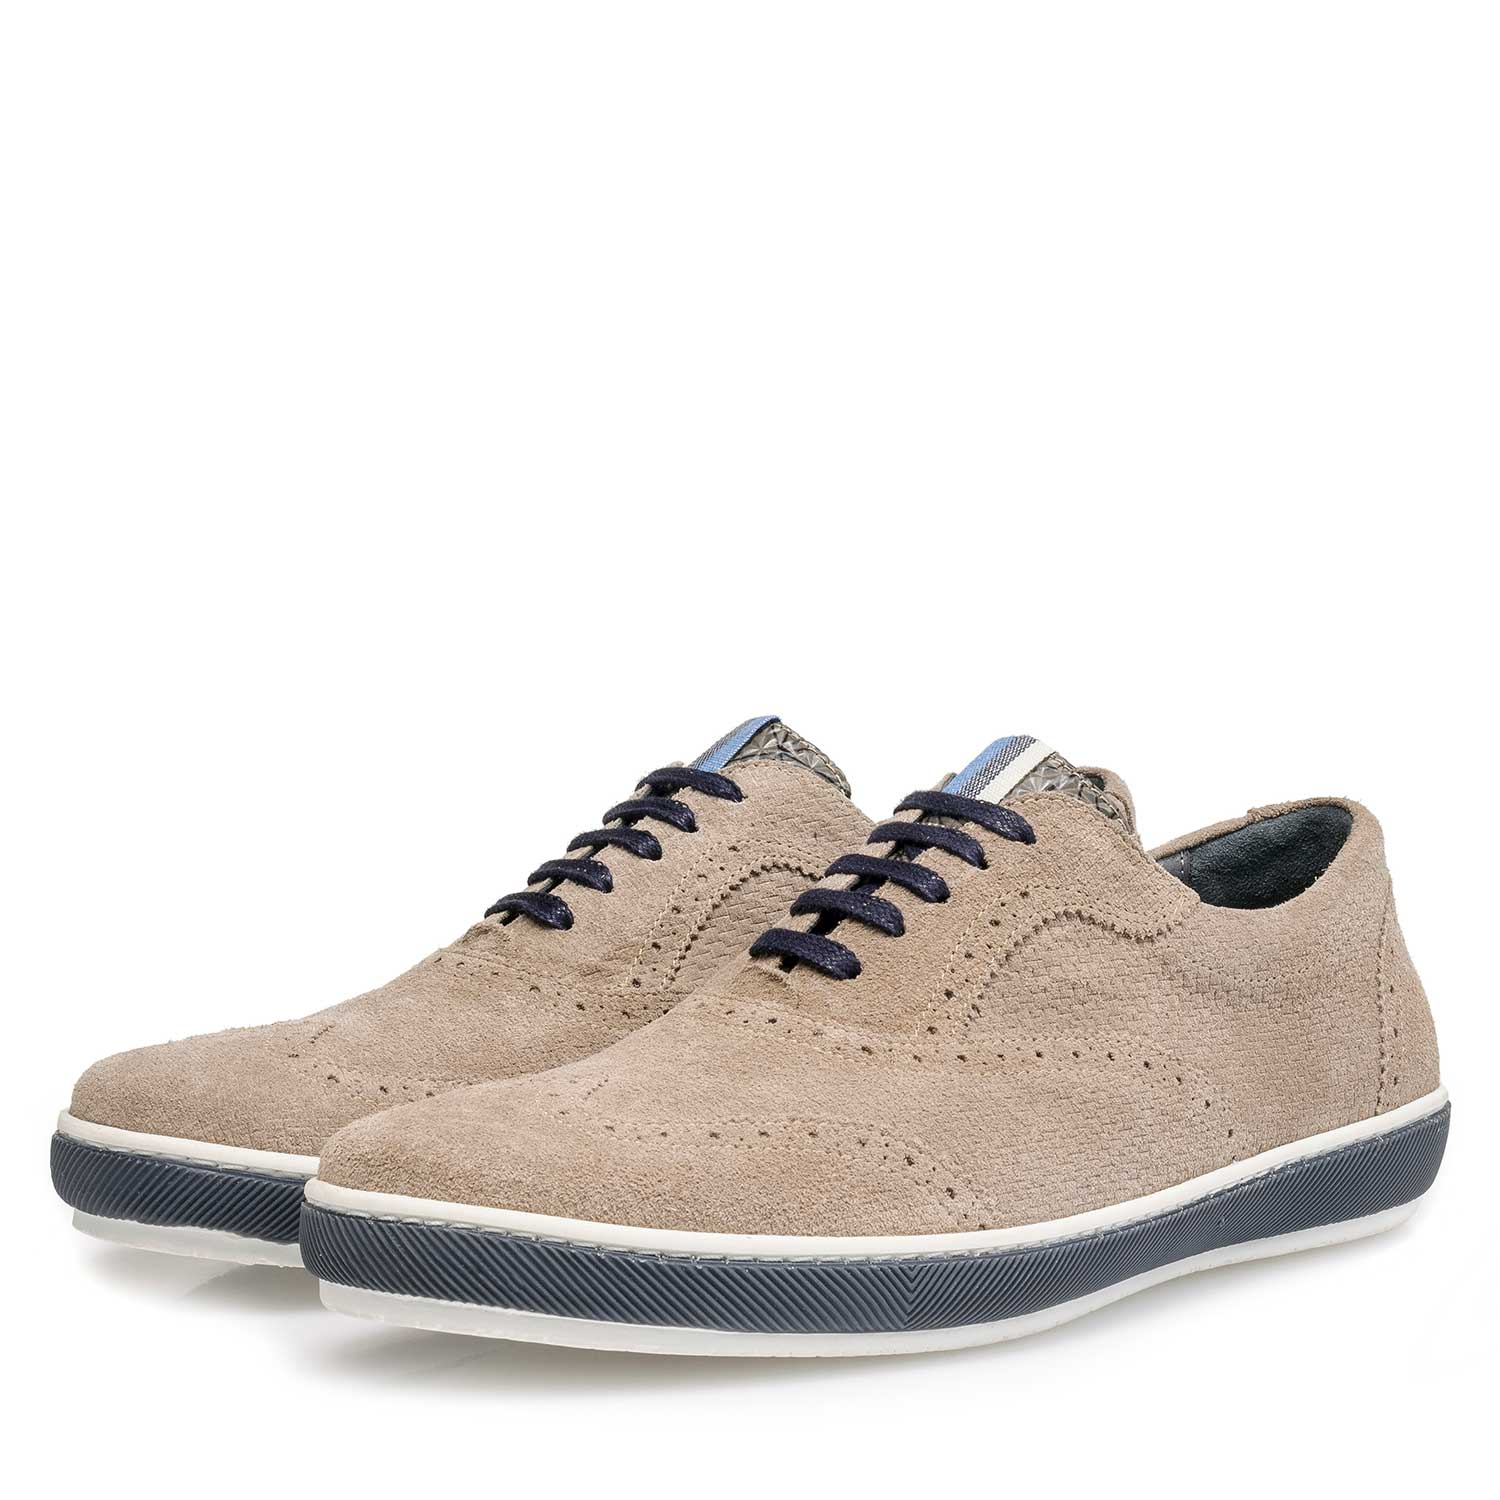 19036/42 - Taupe-coloured suede leather brogue shoe